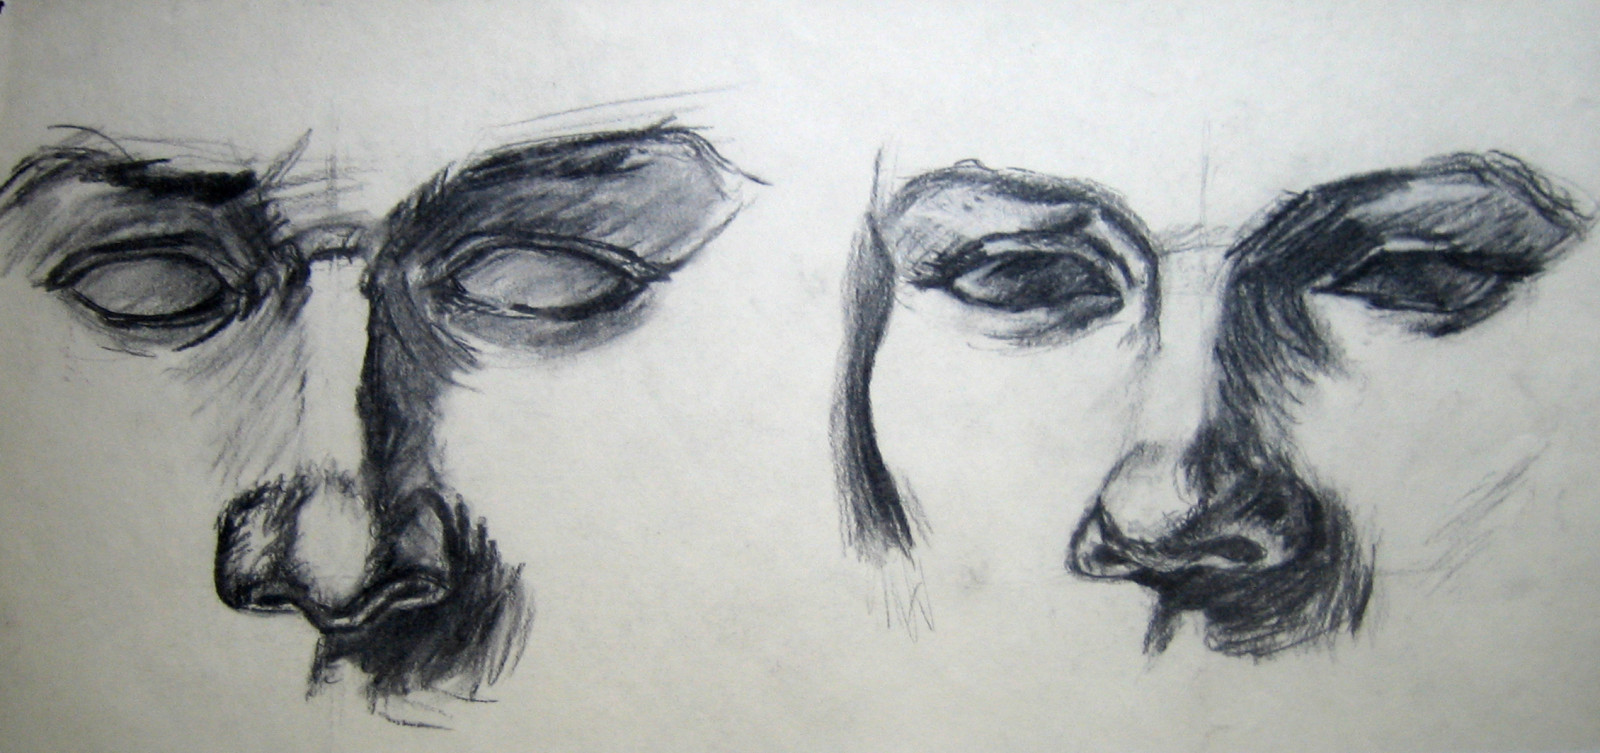 practise-eyes-and-noises-drawing-with-coal